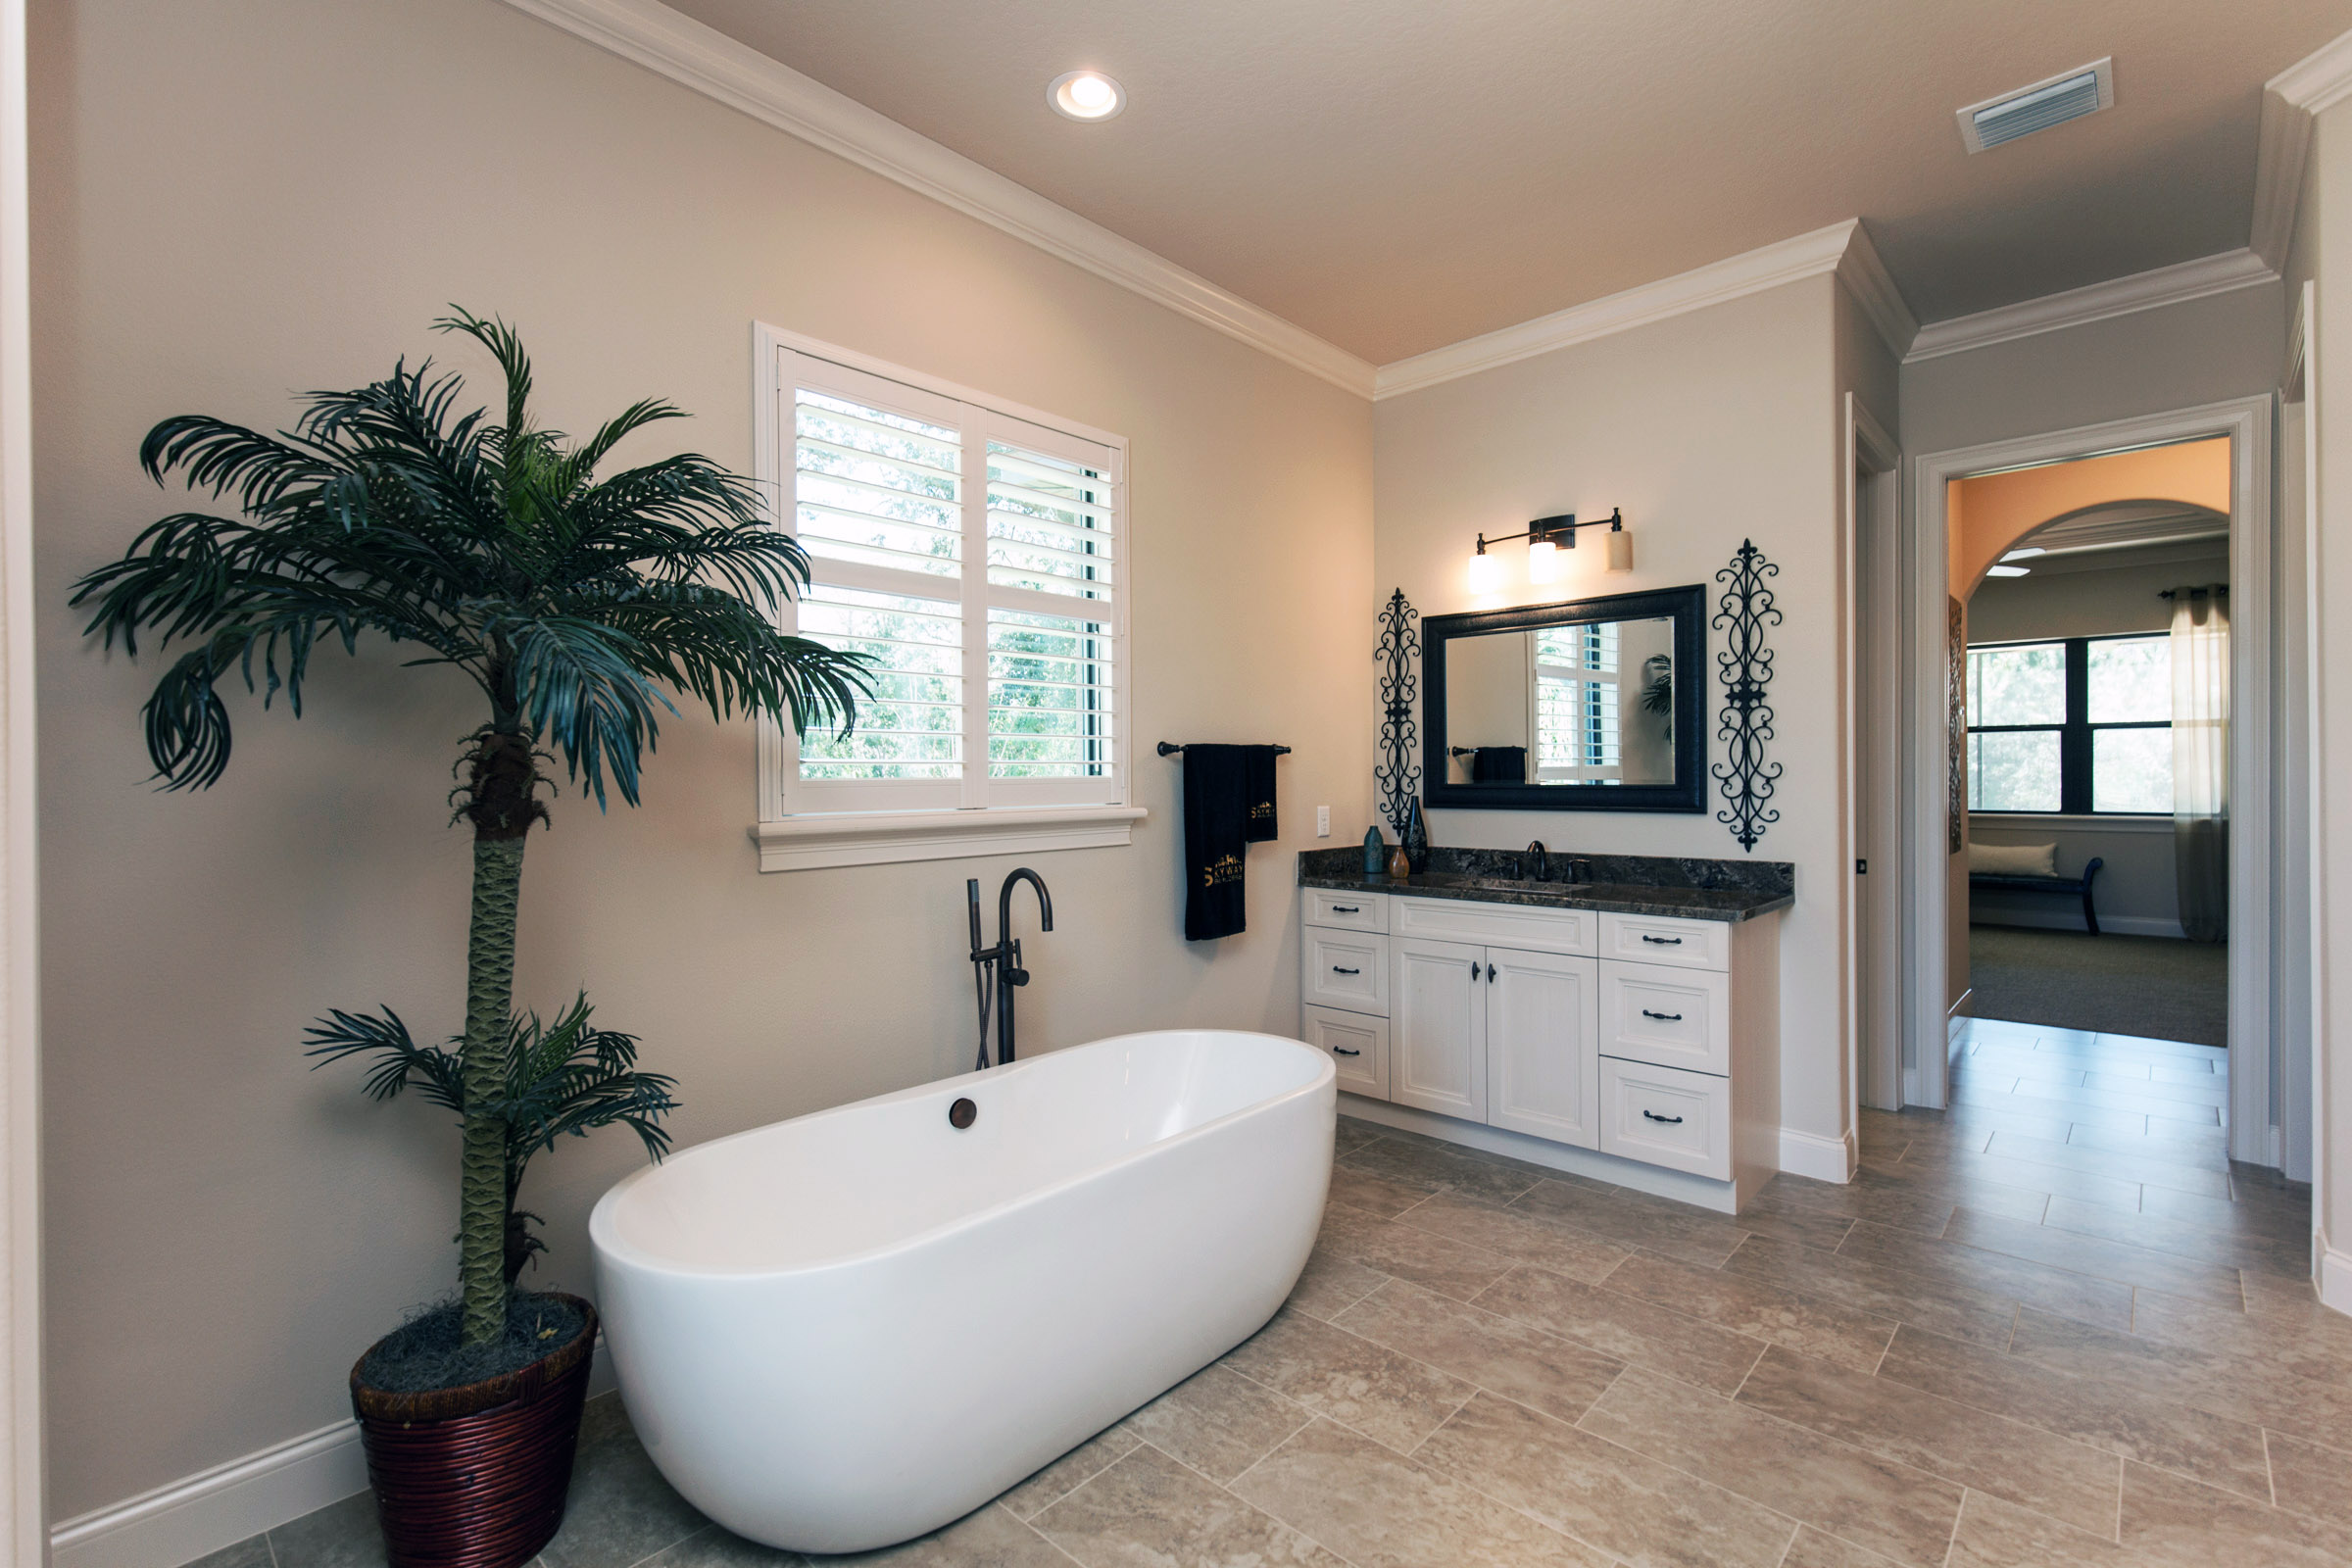 Large bathtub and with potted tree and single vanity sink.